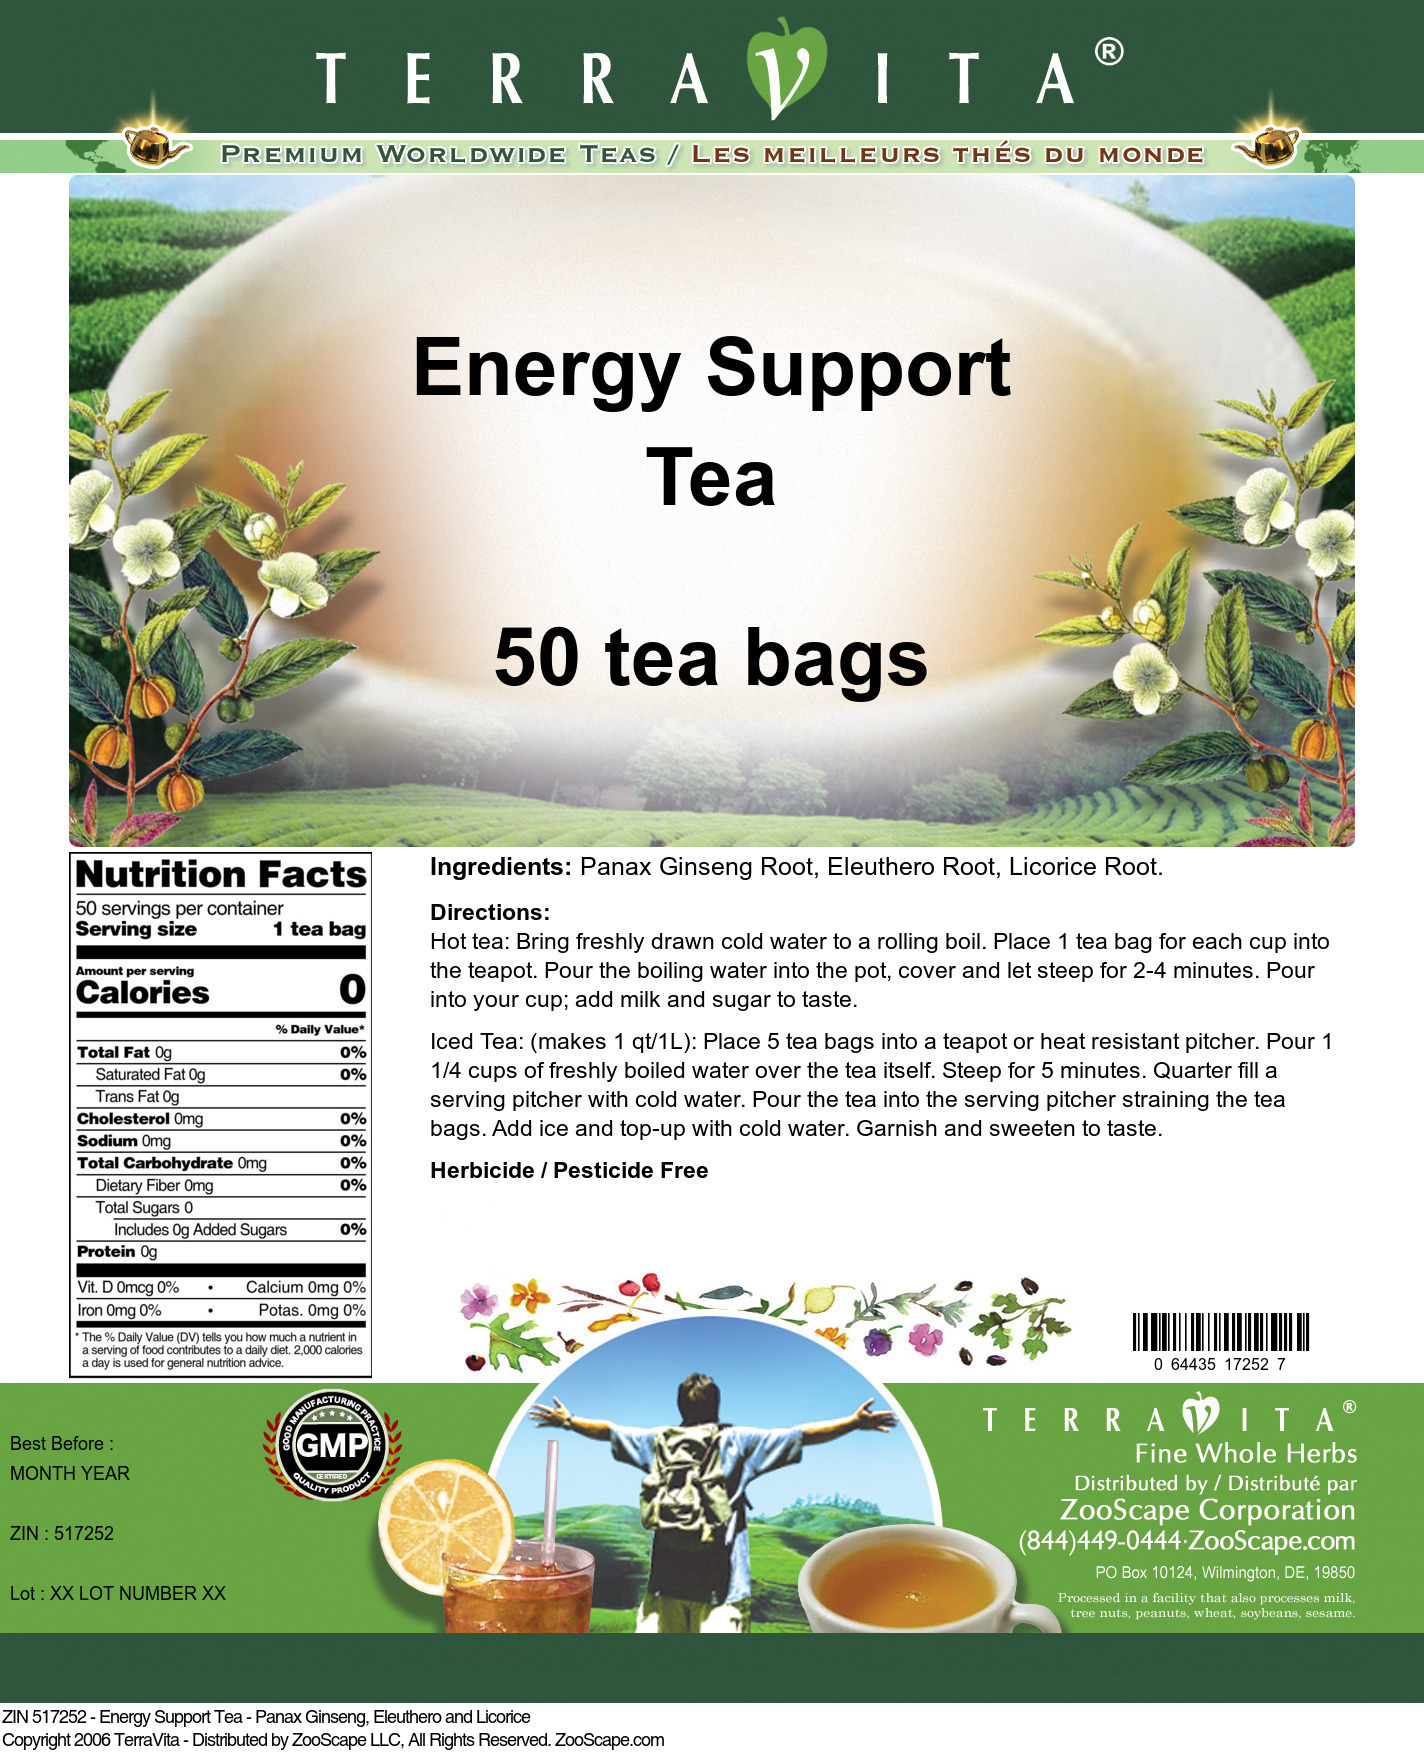 Energy Support Tea - Panax Ginseng, Eleuthero and Licorice